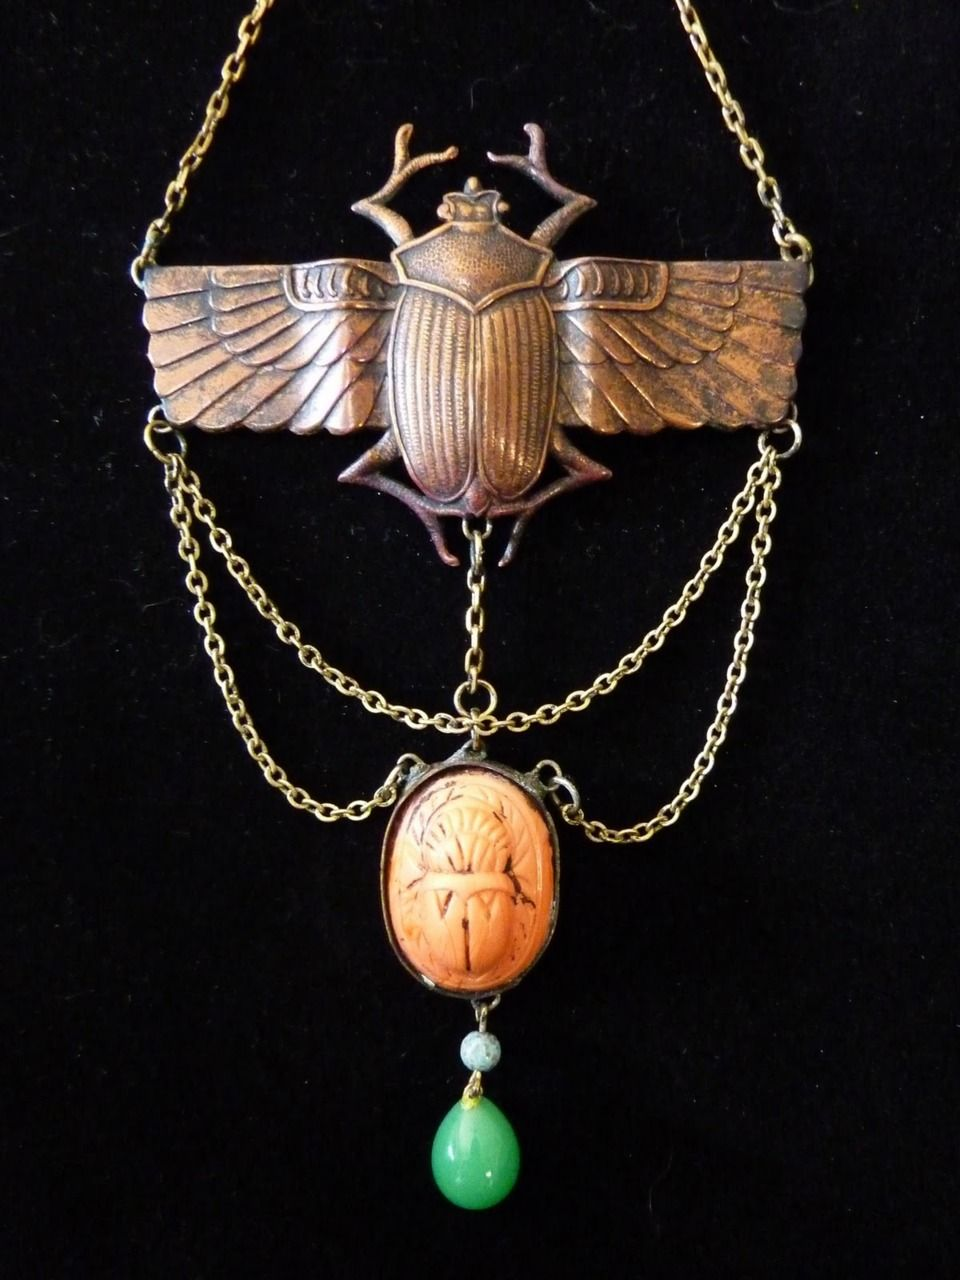 Egyptian Revival necklace